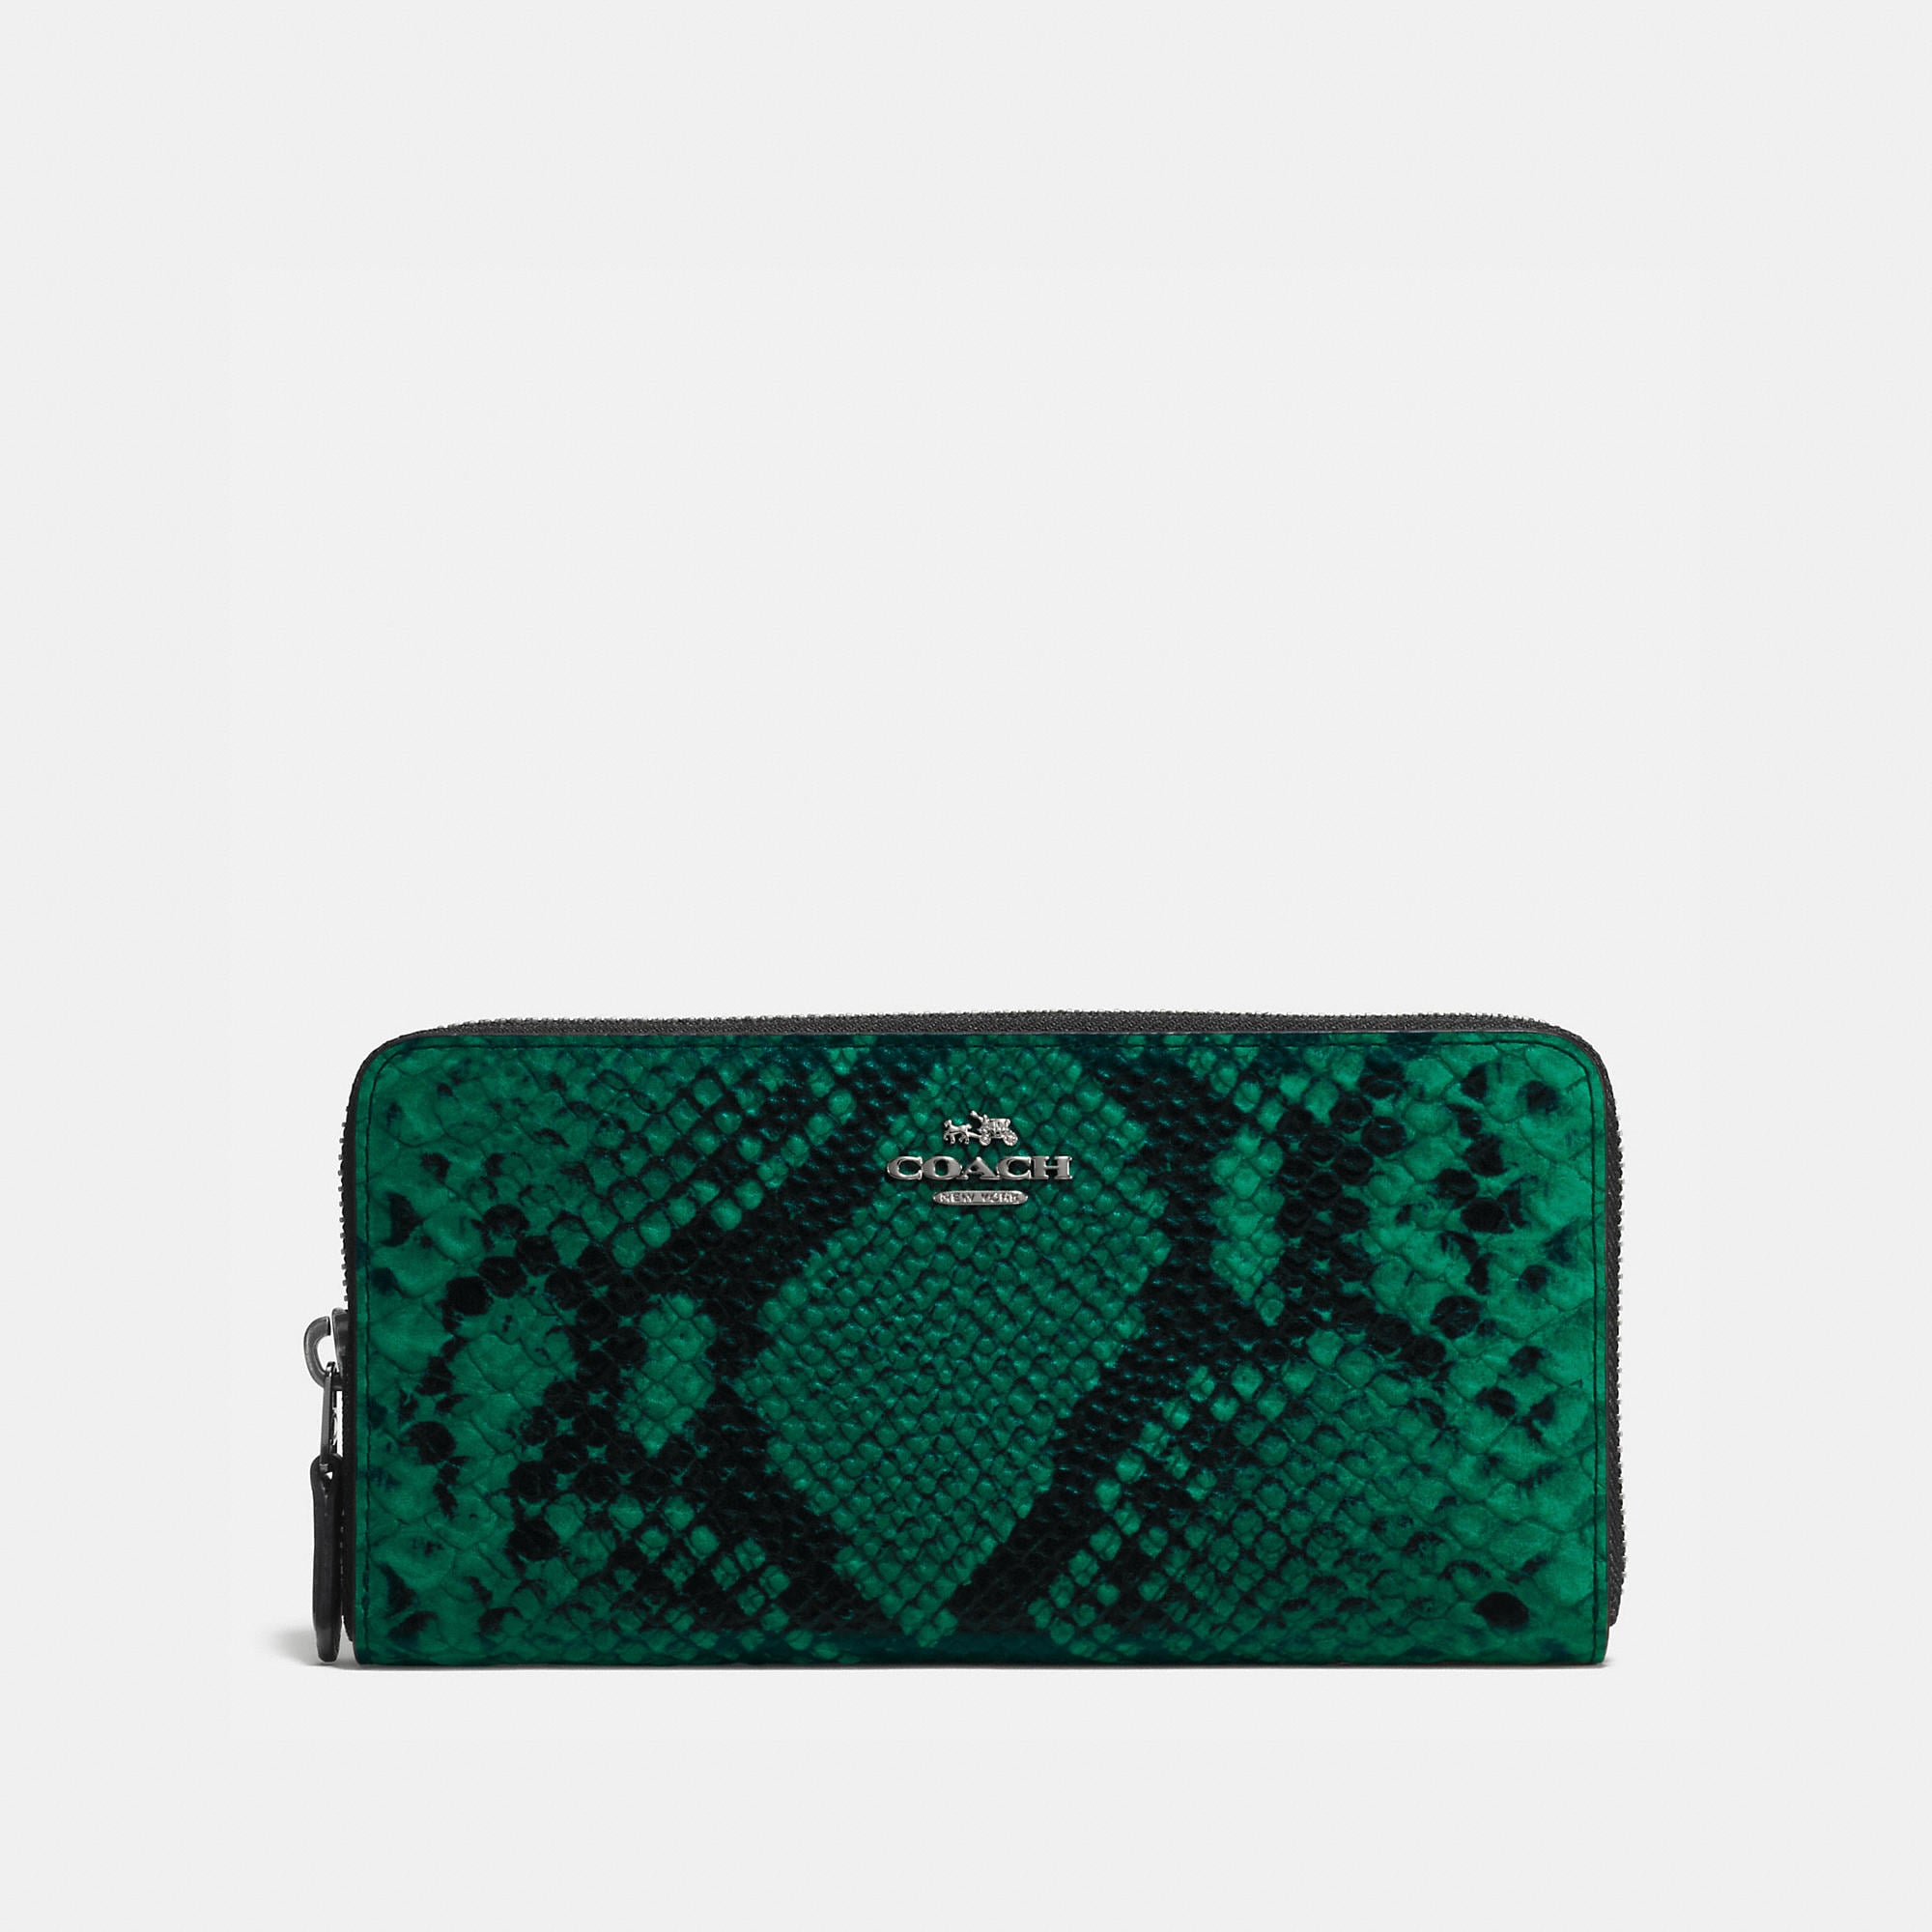 Coach Accordion Zip Wallet In Python Embossed Leather